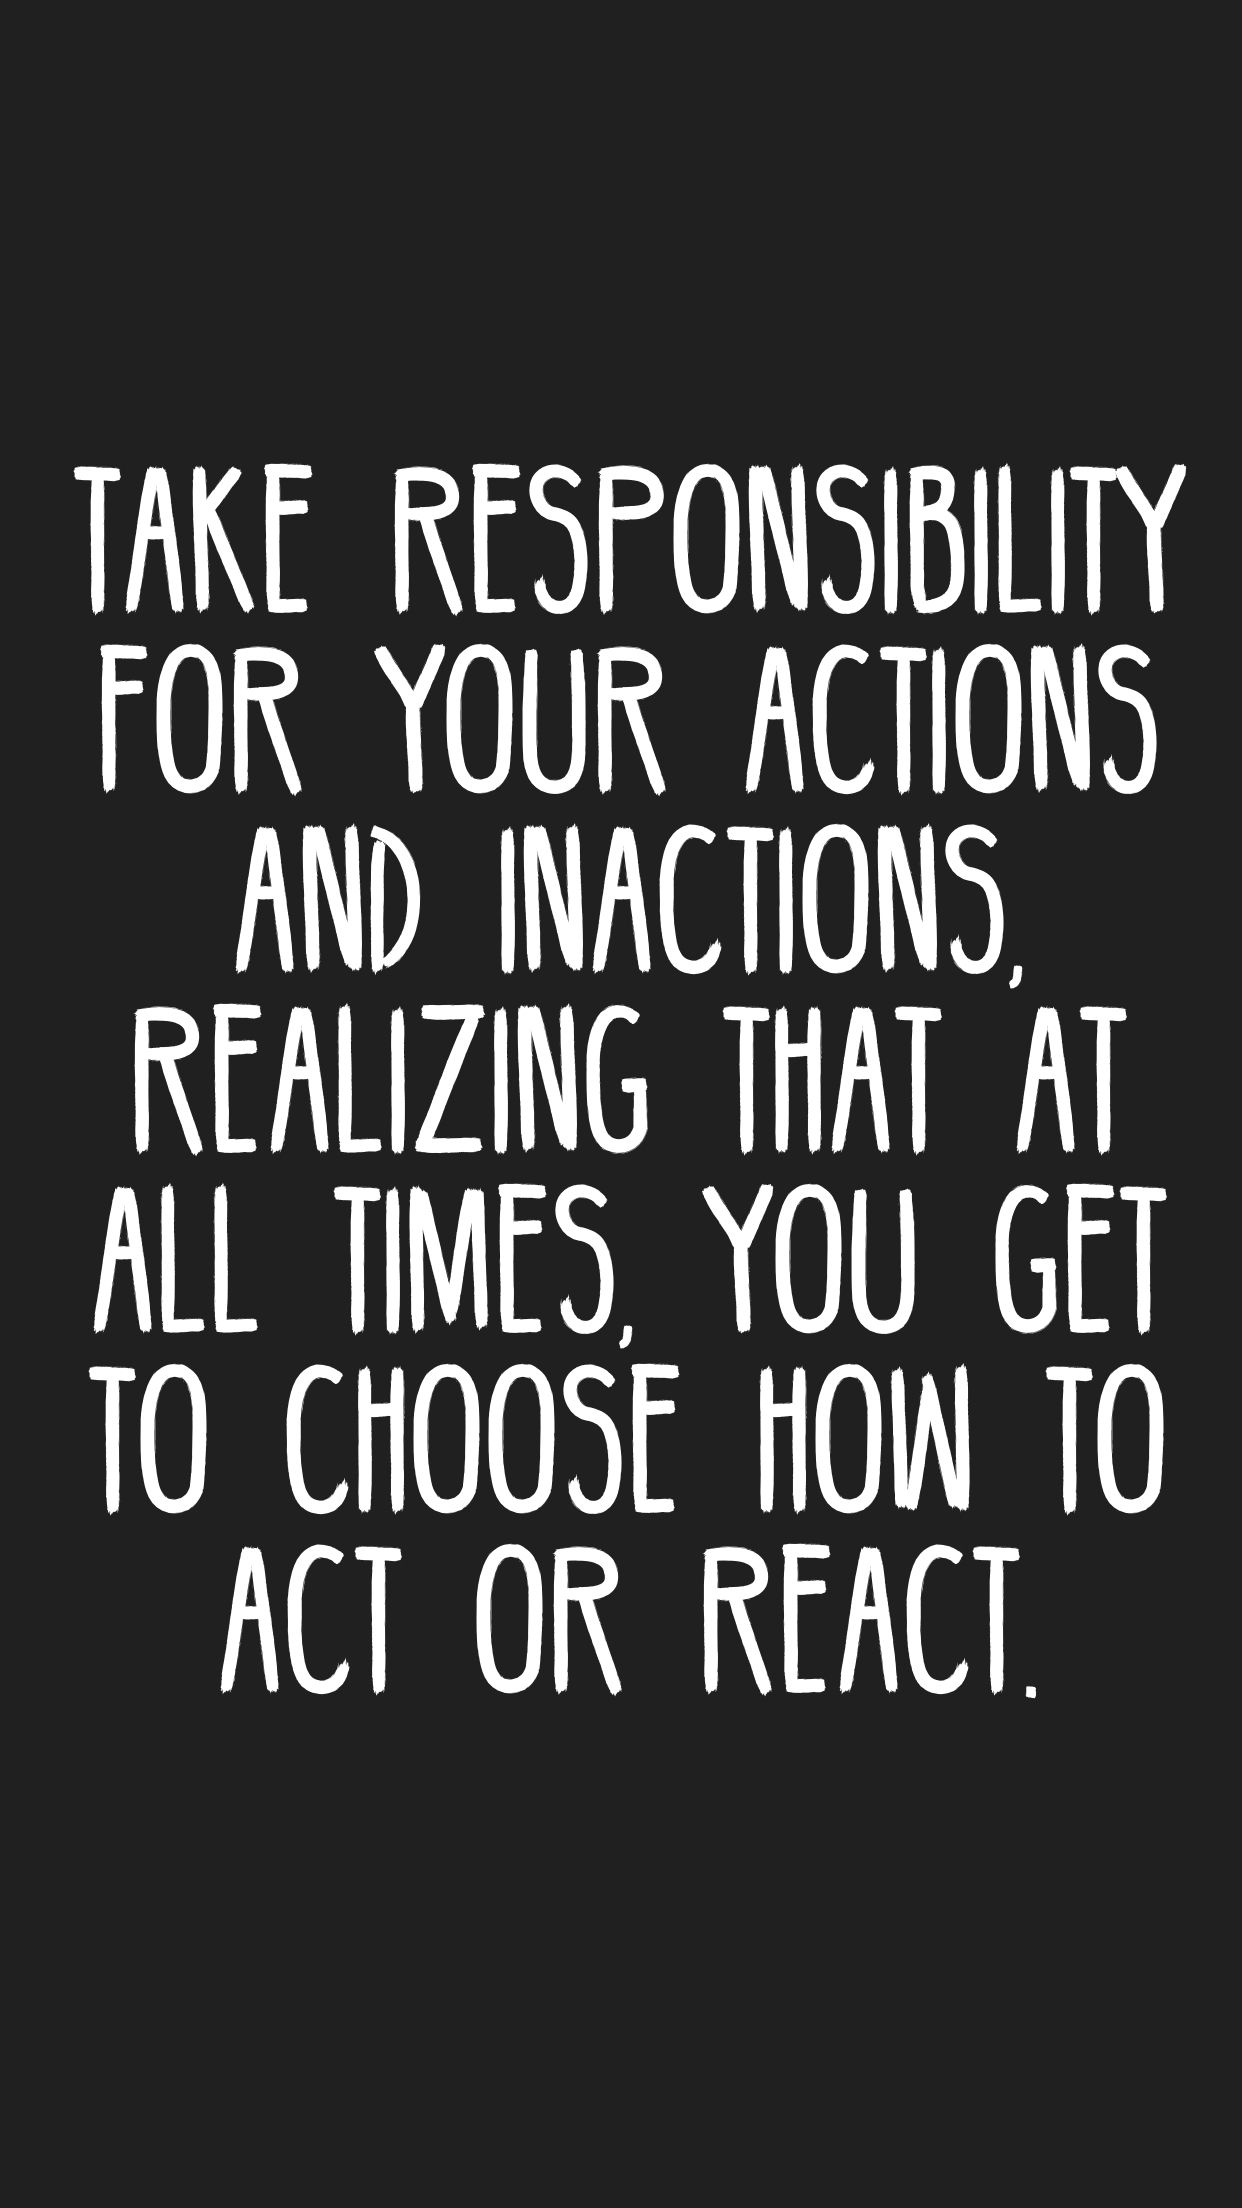 Take Responsibility For Your Actions And Inactions Realizing That At All Times You Get To Choose How T Action Quotes Inspiring Quotes About Life React Quotes